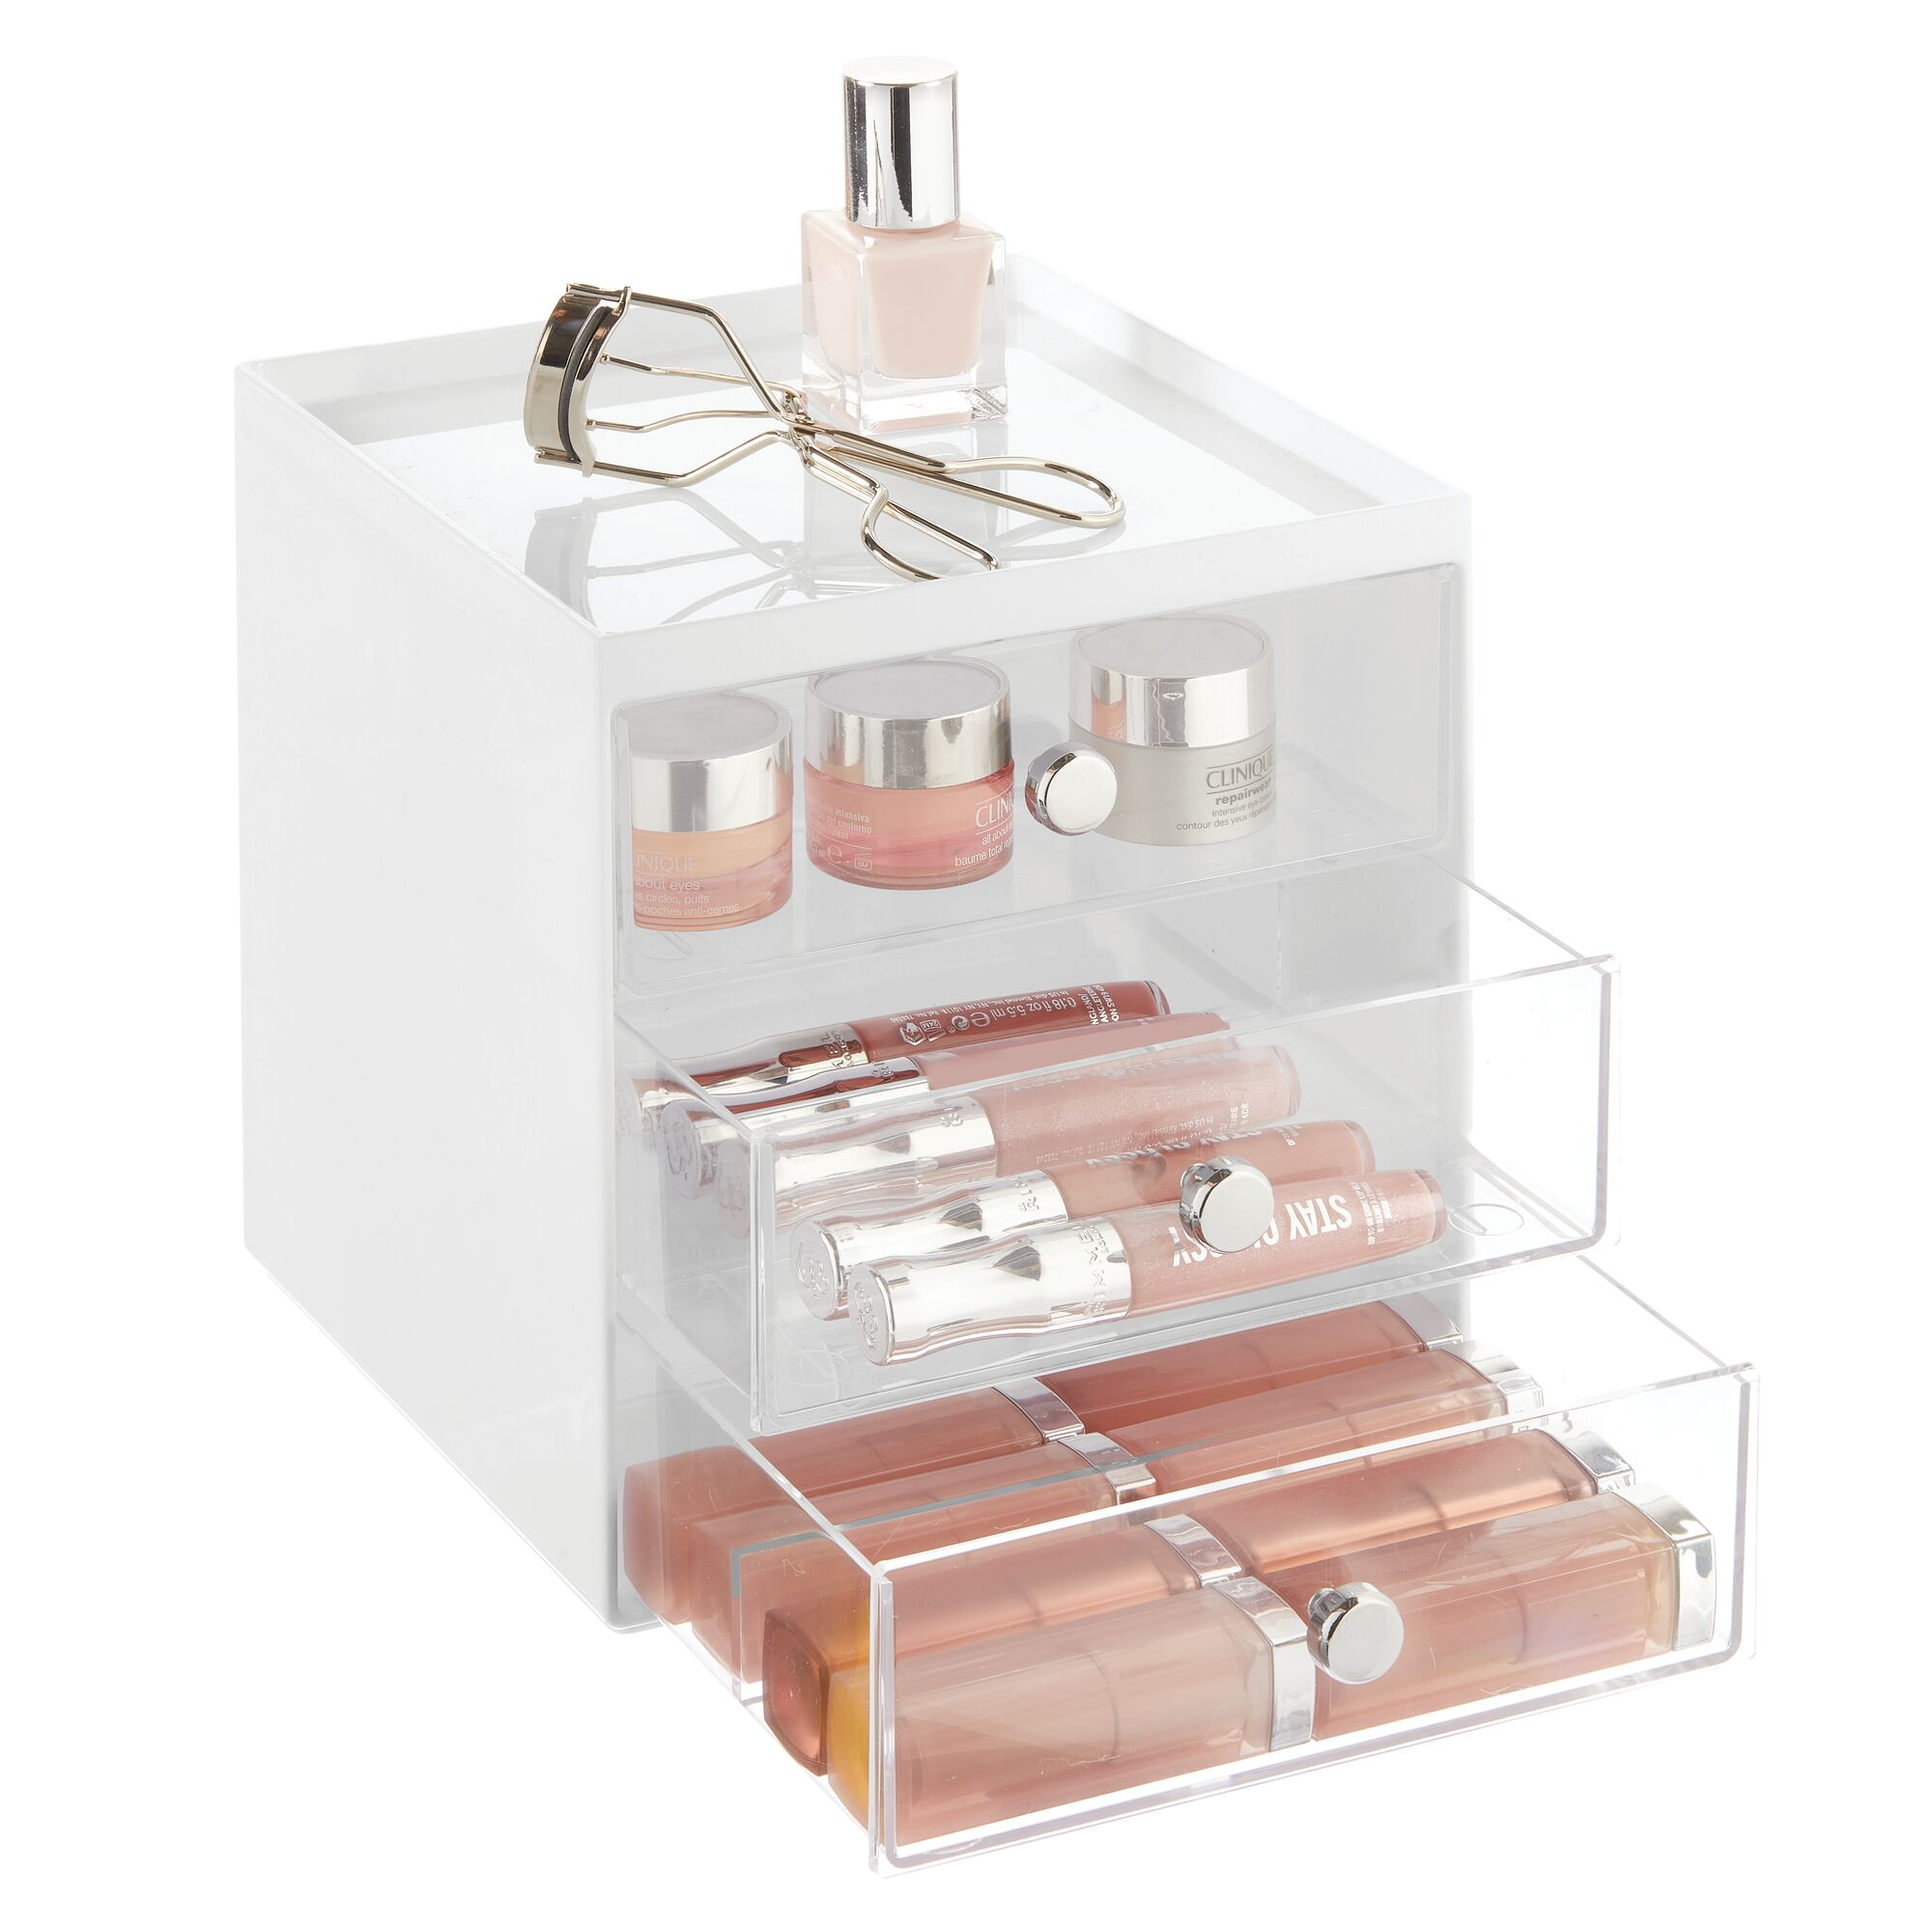 mDesign-Plastic-Makeup-Storage-Organizer-Cube-3-Drawers thumbnail 77